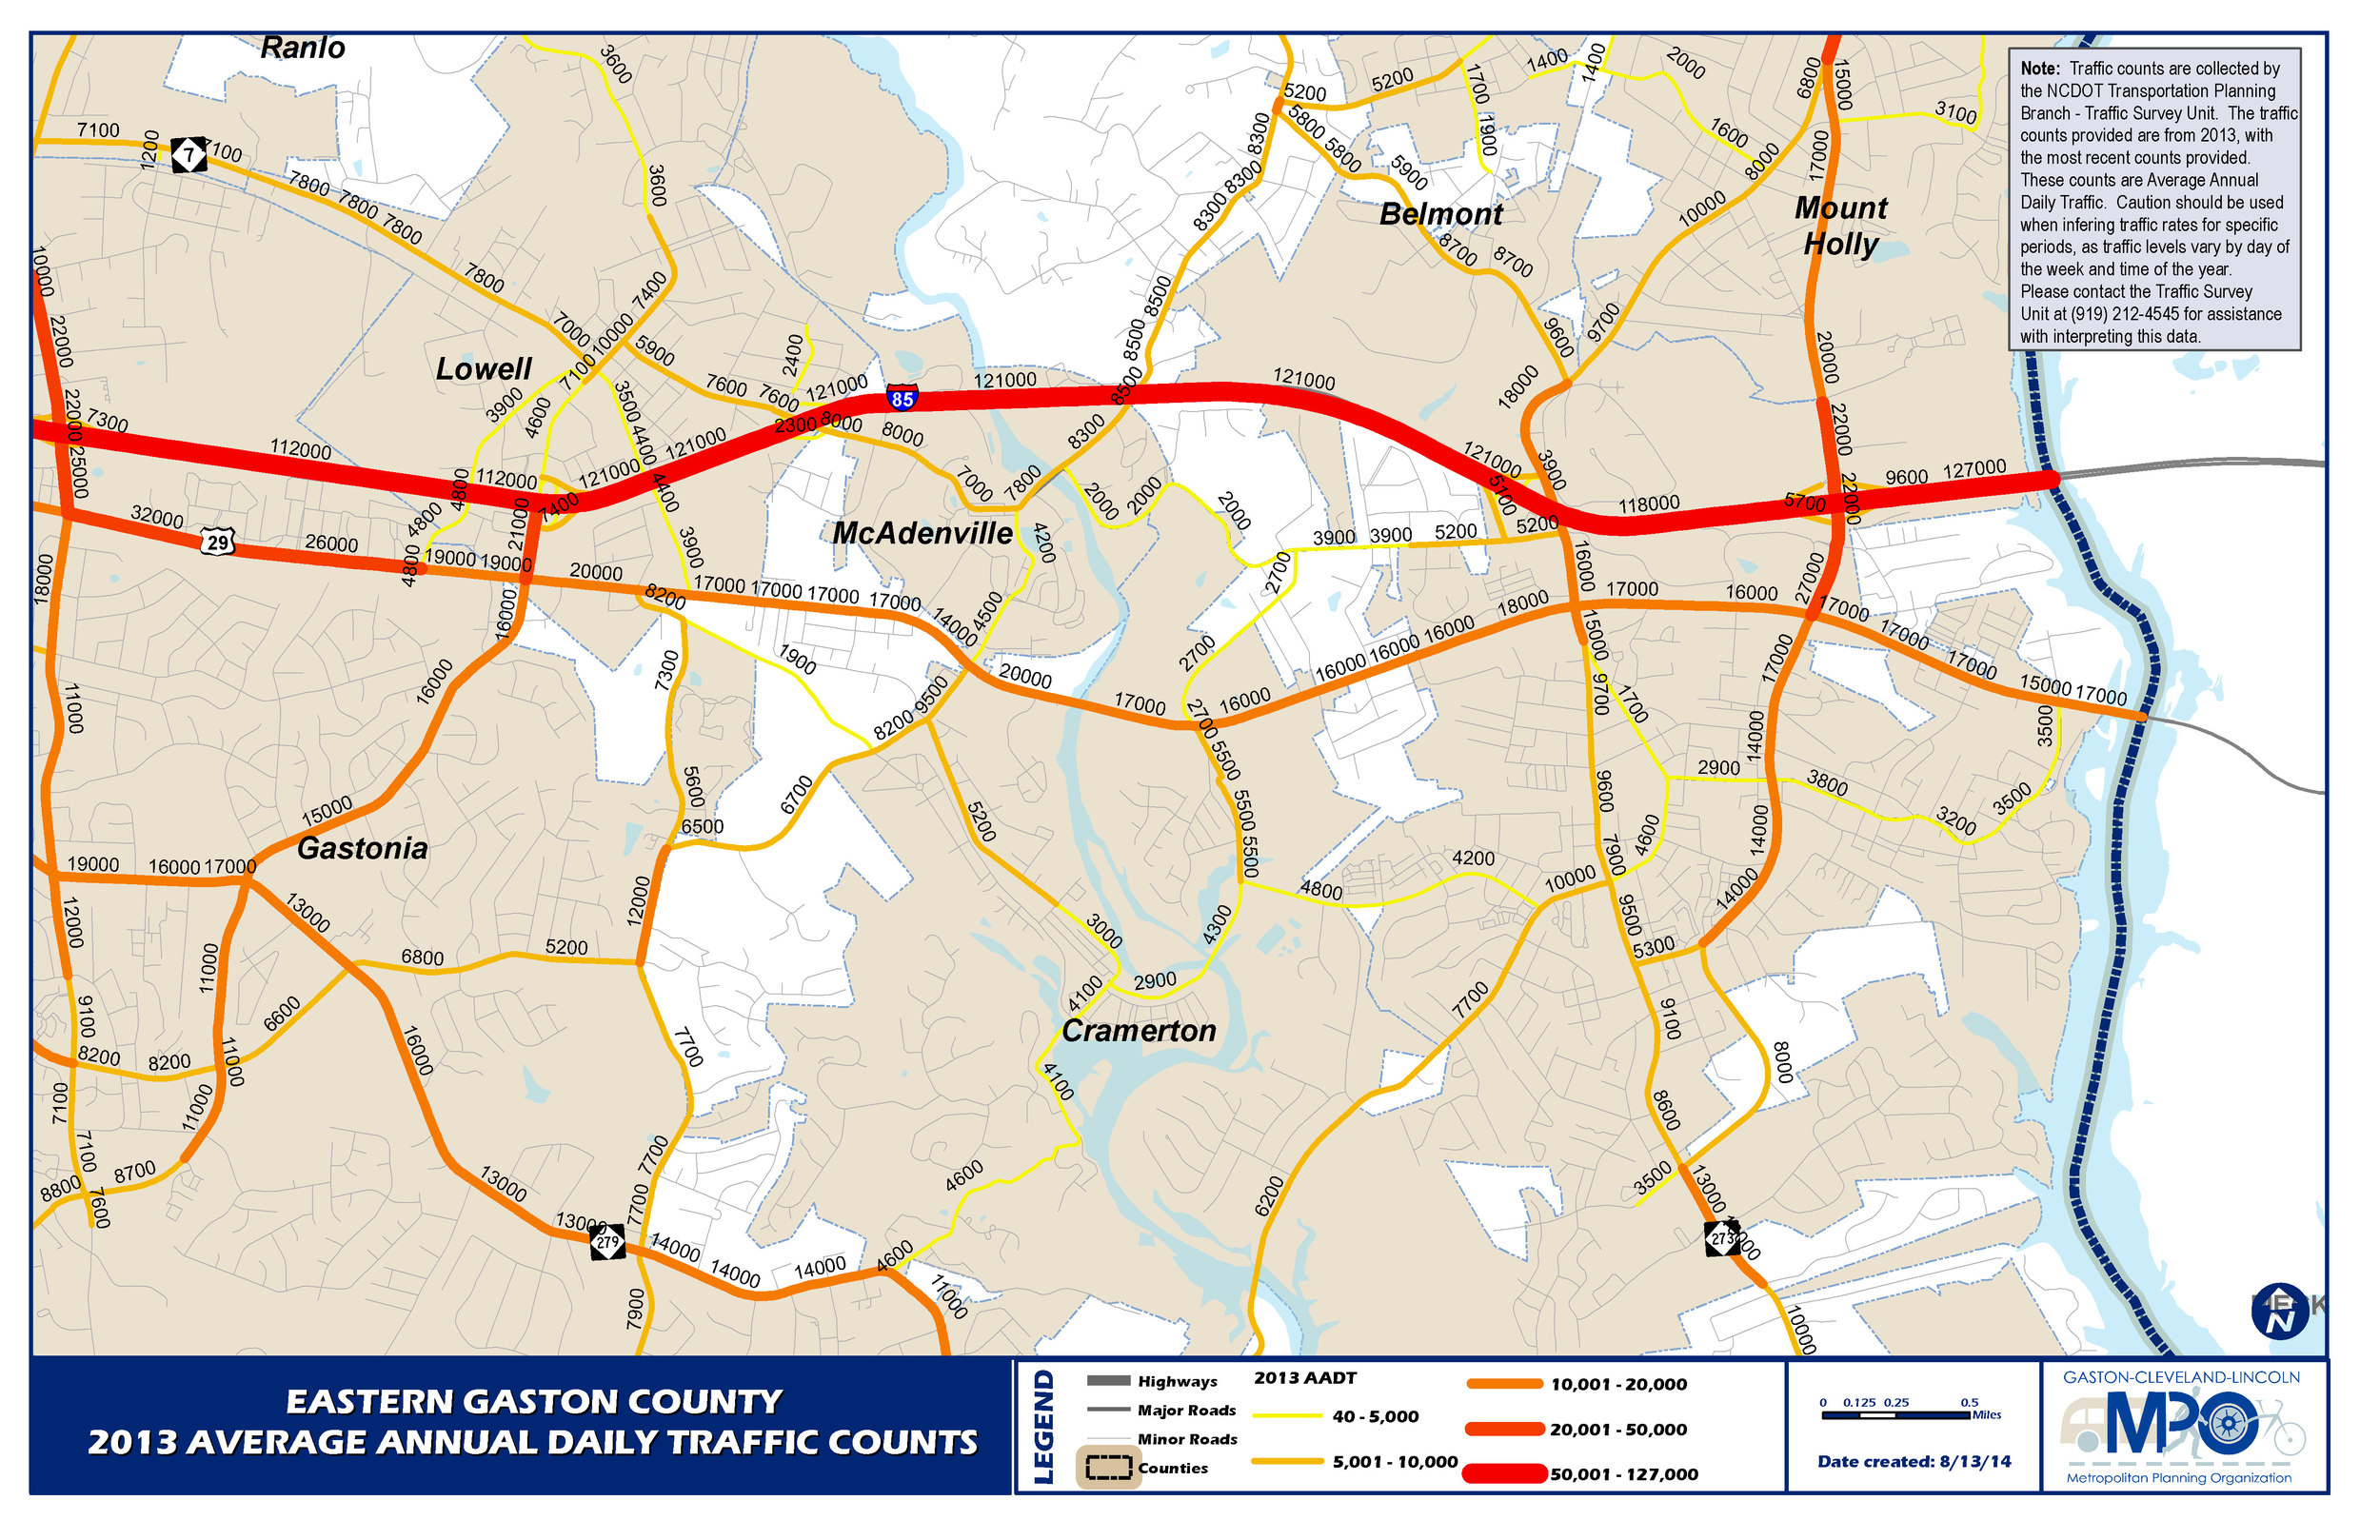 Eastern Gaston County 2013 Average Annual Daily Traffic Counts